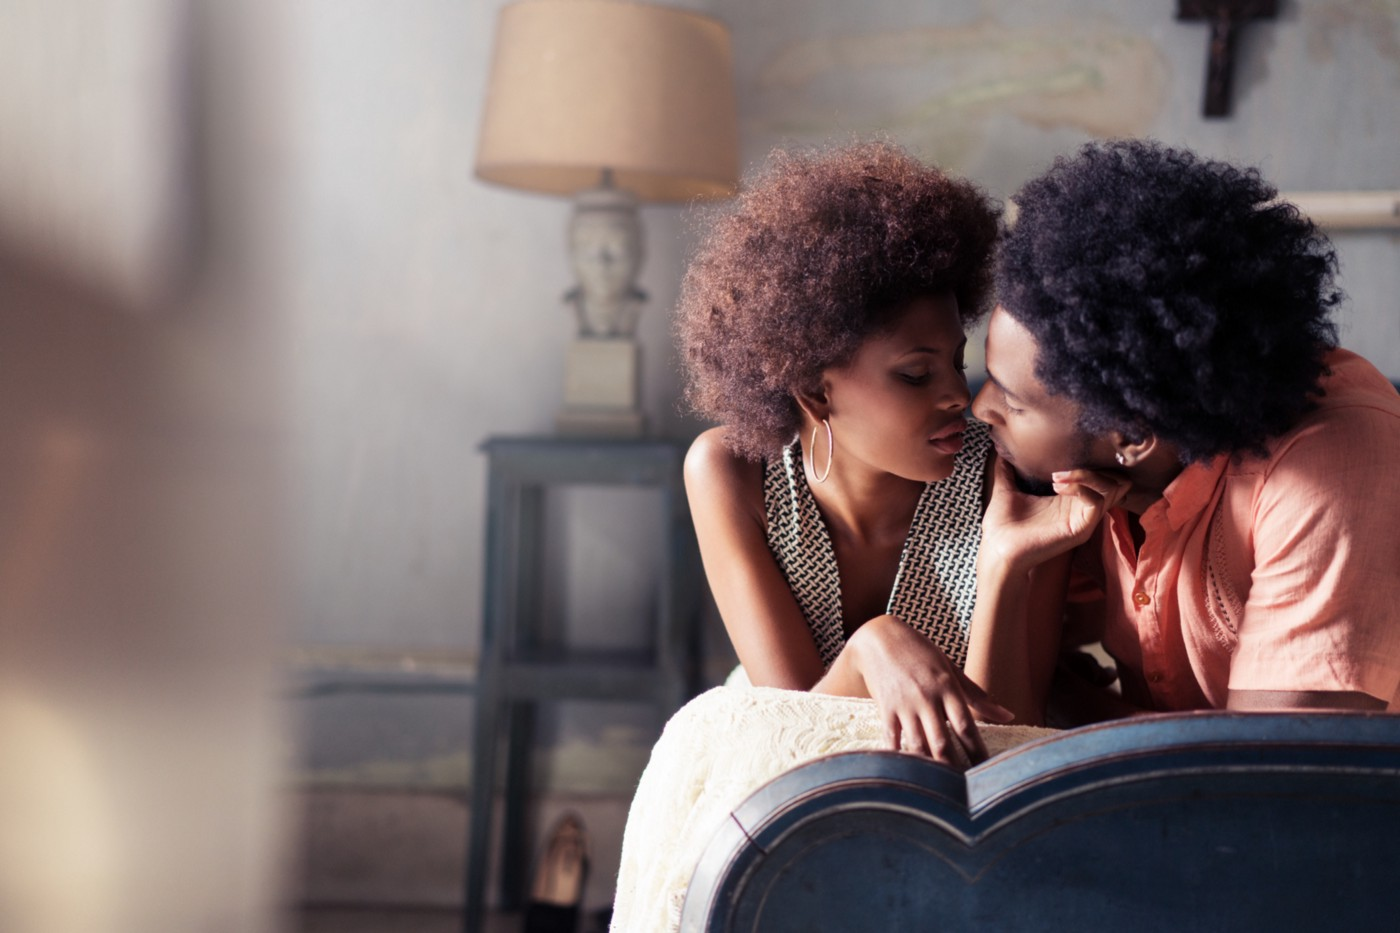 A photo of a black couple about to share a kiss on a bed.